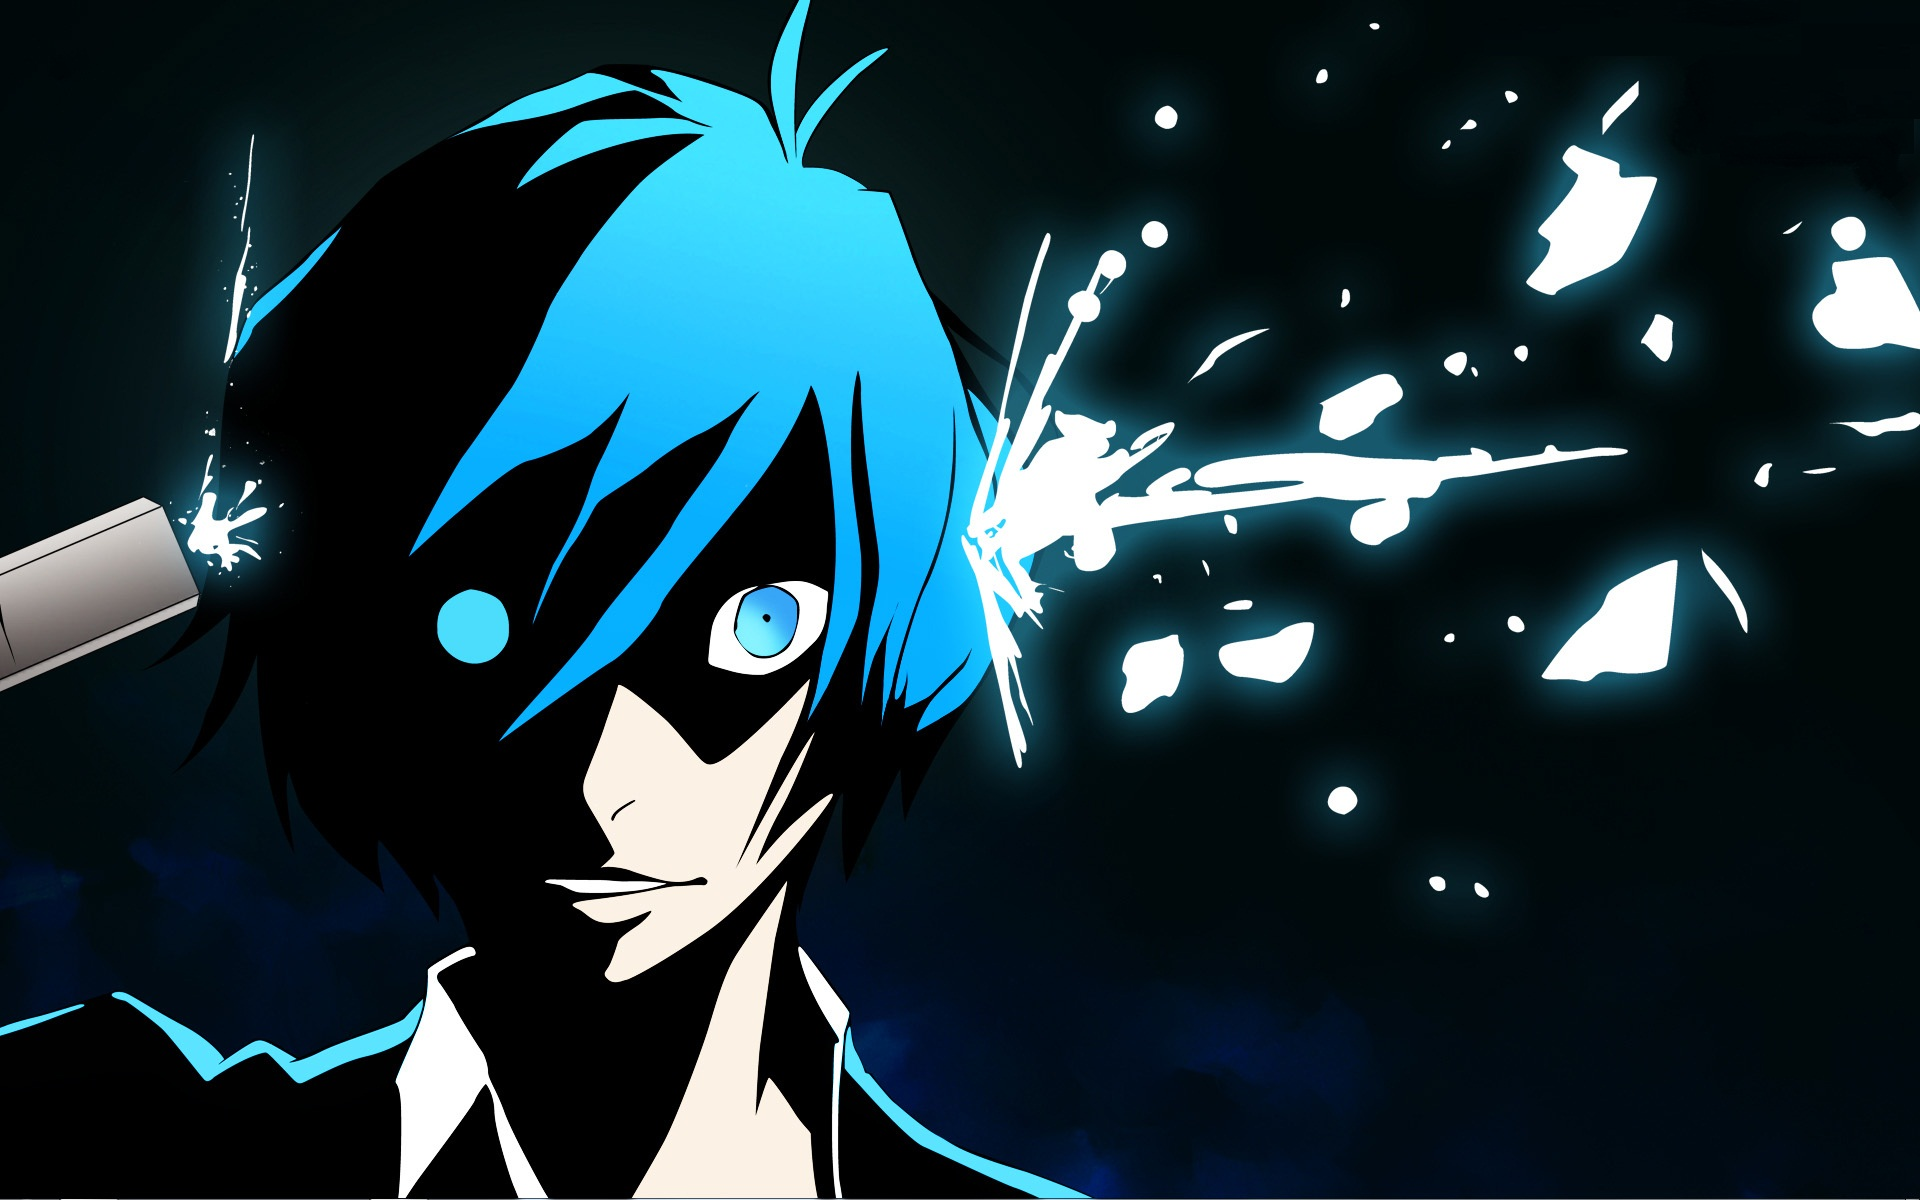 Persona 3 iphone 5 wallpaper - Video Game Persona 3 Persona Male Protagonist Wallpaper